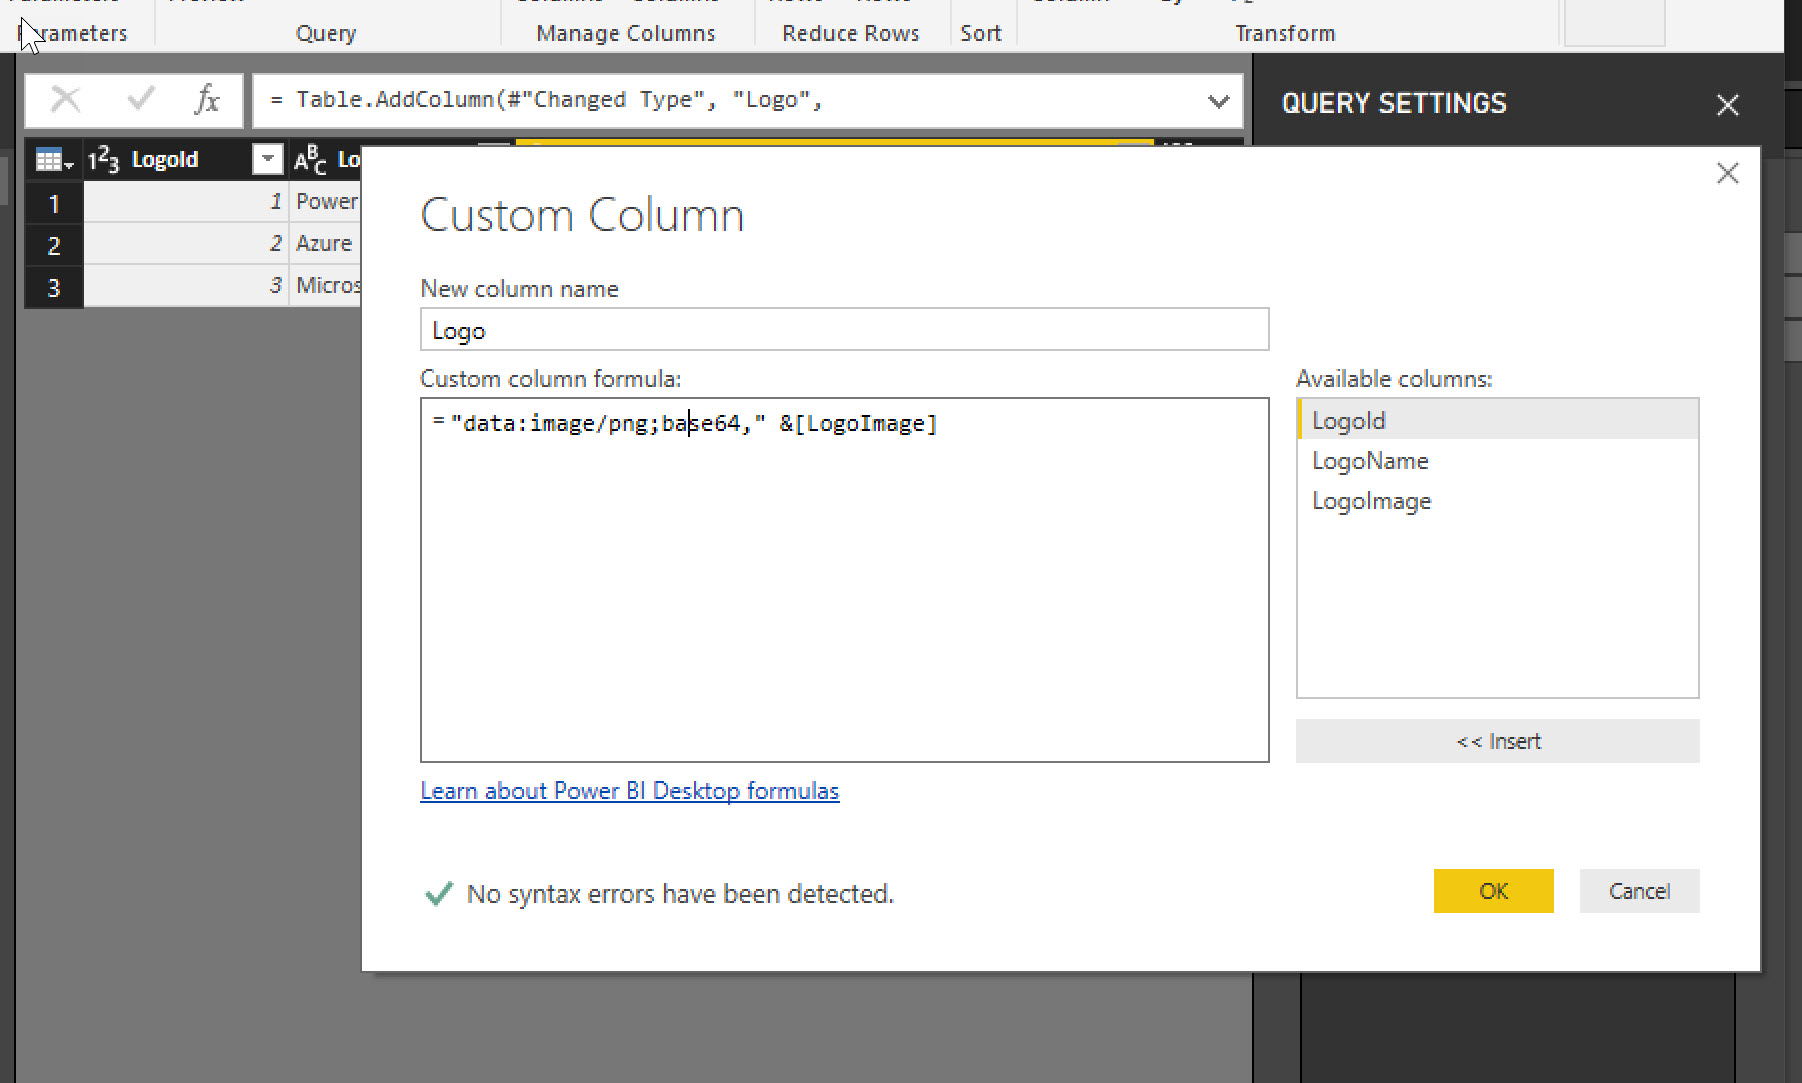 Solved: How to use Images Stored in a SQL Server Table wit